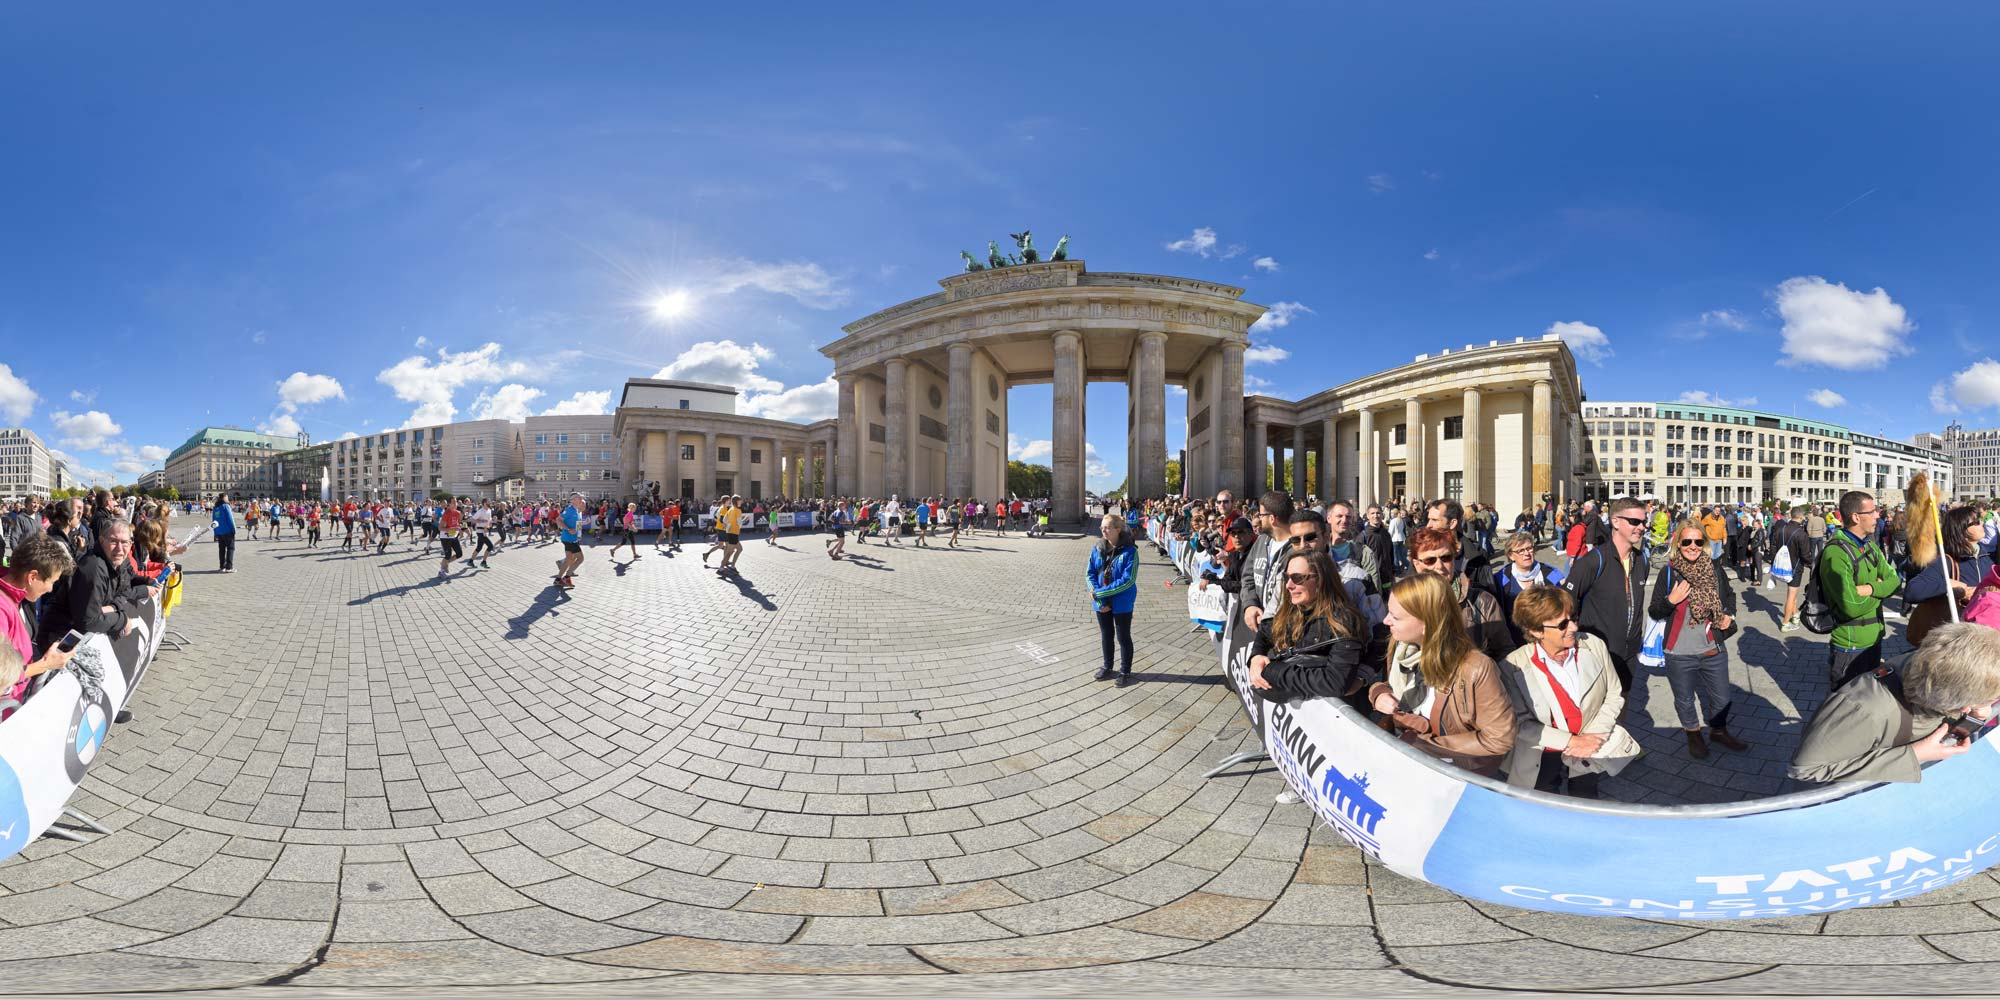 Panorama Berlin Brandenburger Tor - Marathon 2013